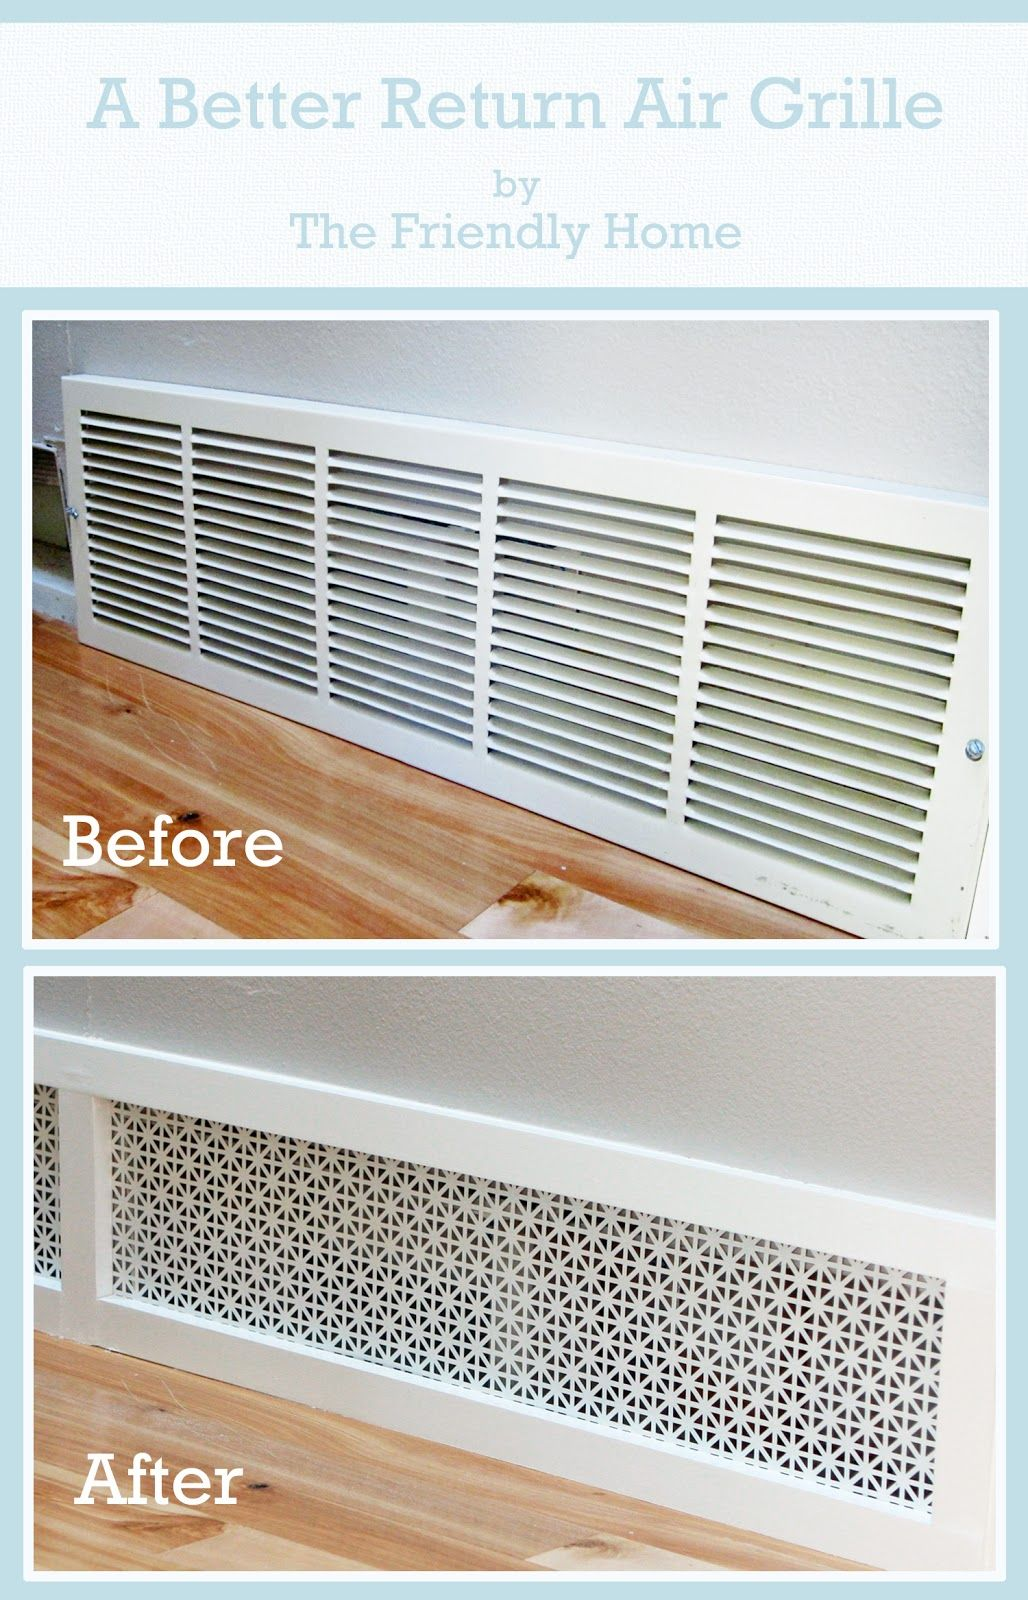 The friendly home a better looking return air grille for Www the house com returns